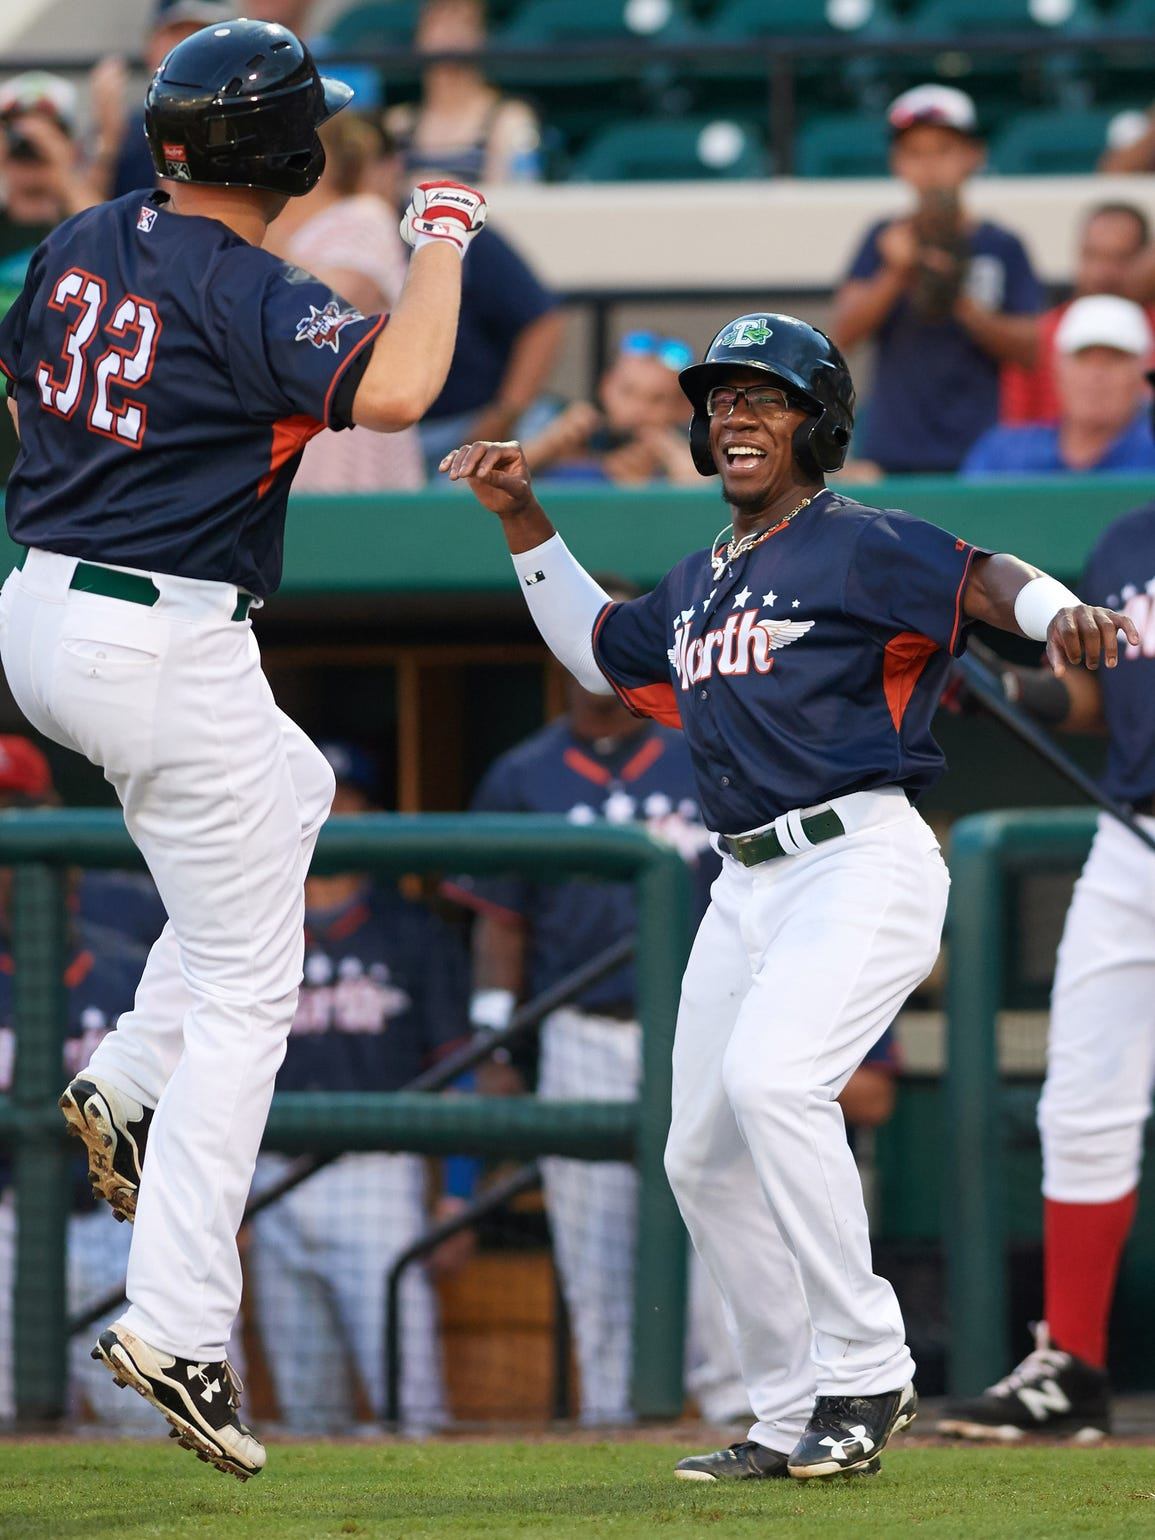 Long celebrates with teammate Gavin LaValley during the Florida State League All-Star Game on June 17.